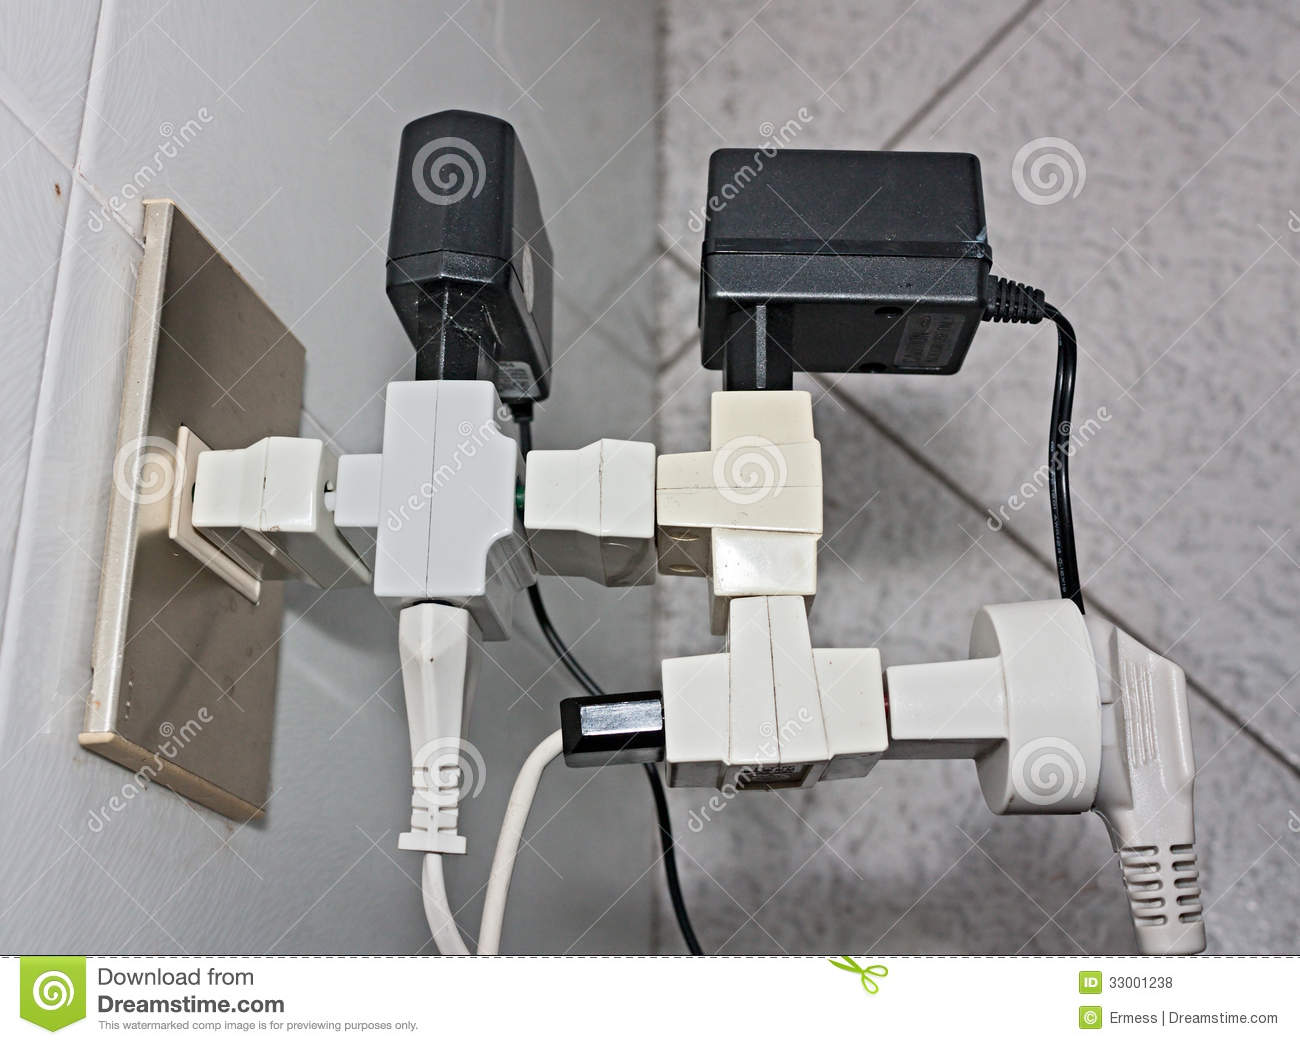 Electrical connection - , the free encyclopedia